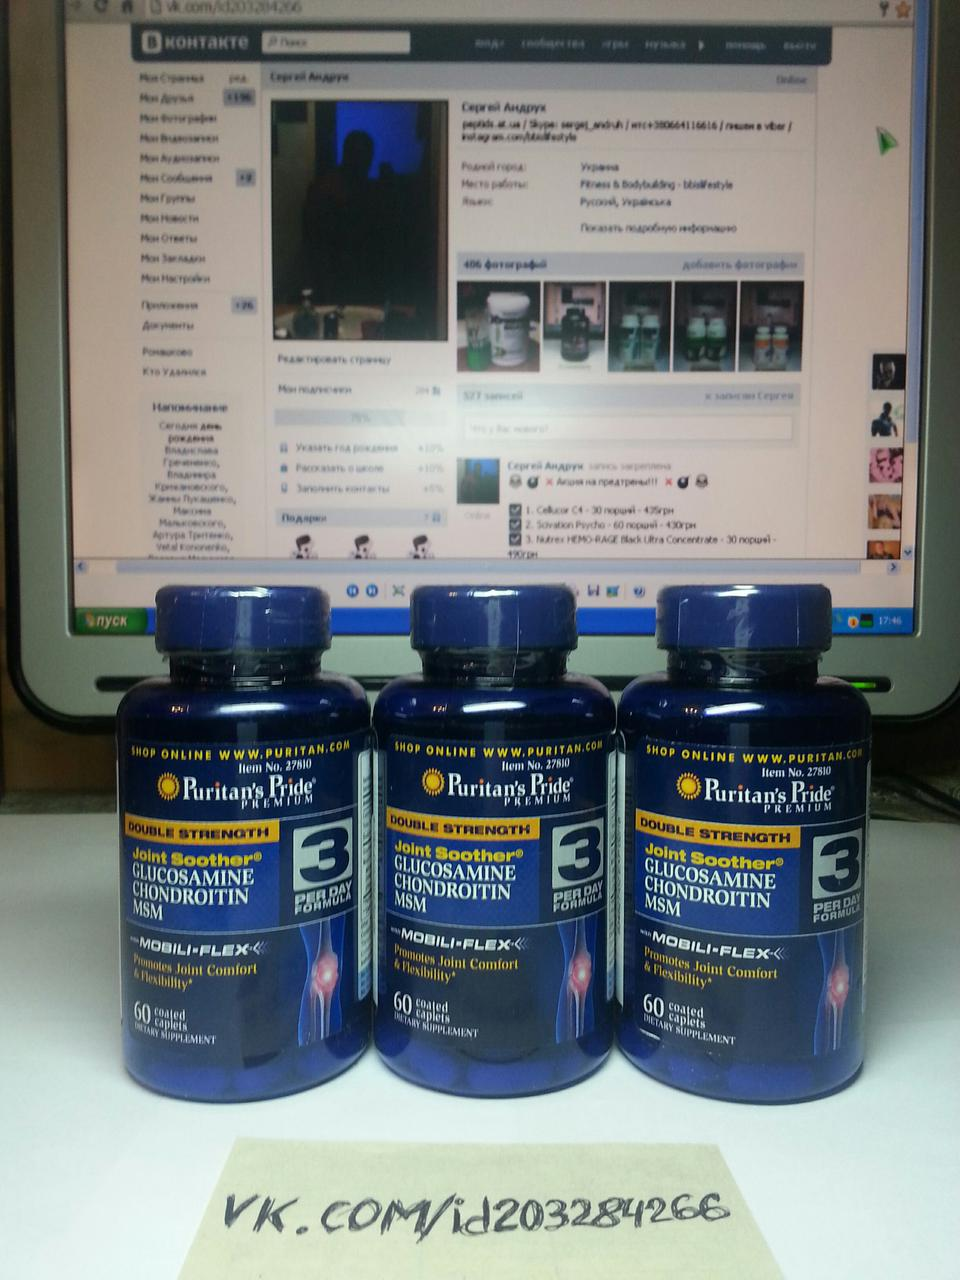 Puritans Pride Glucosamine Chondroitin MSM Double Strength 120 tabs